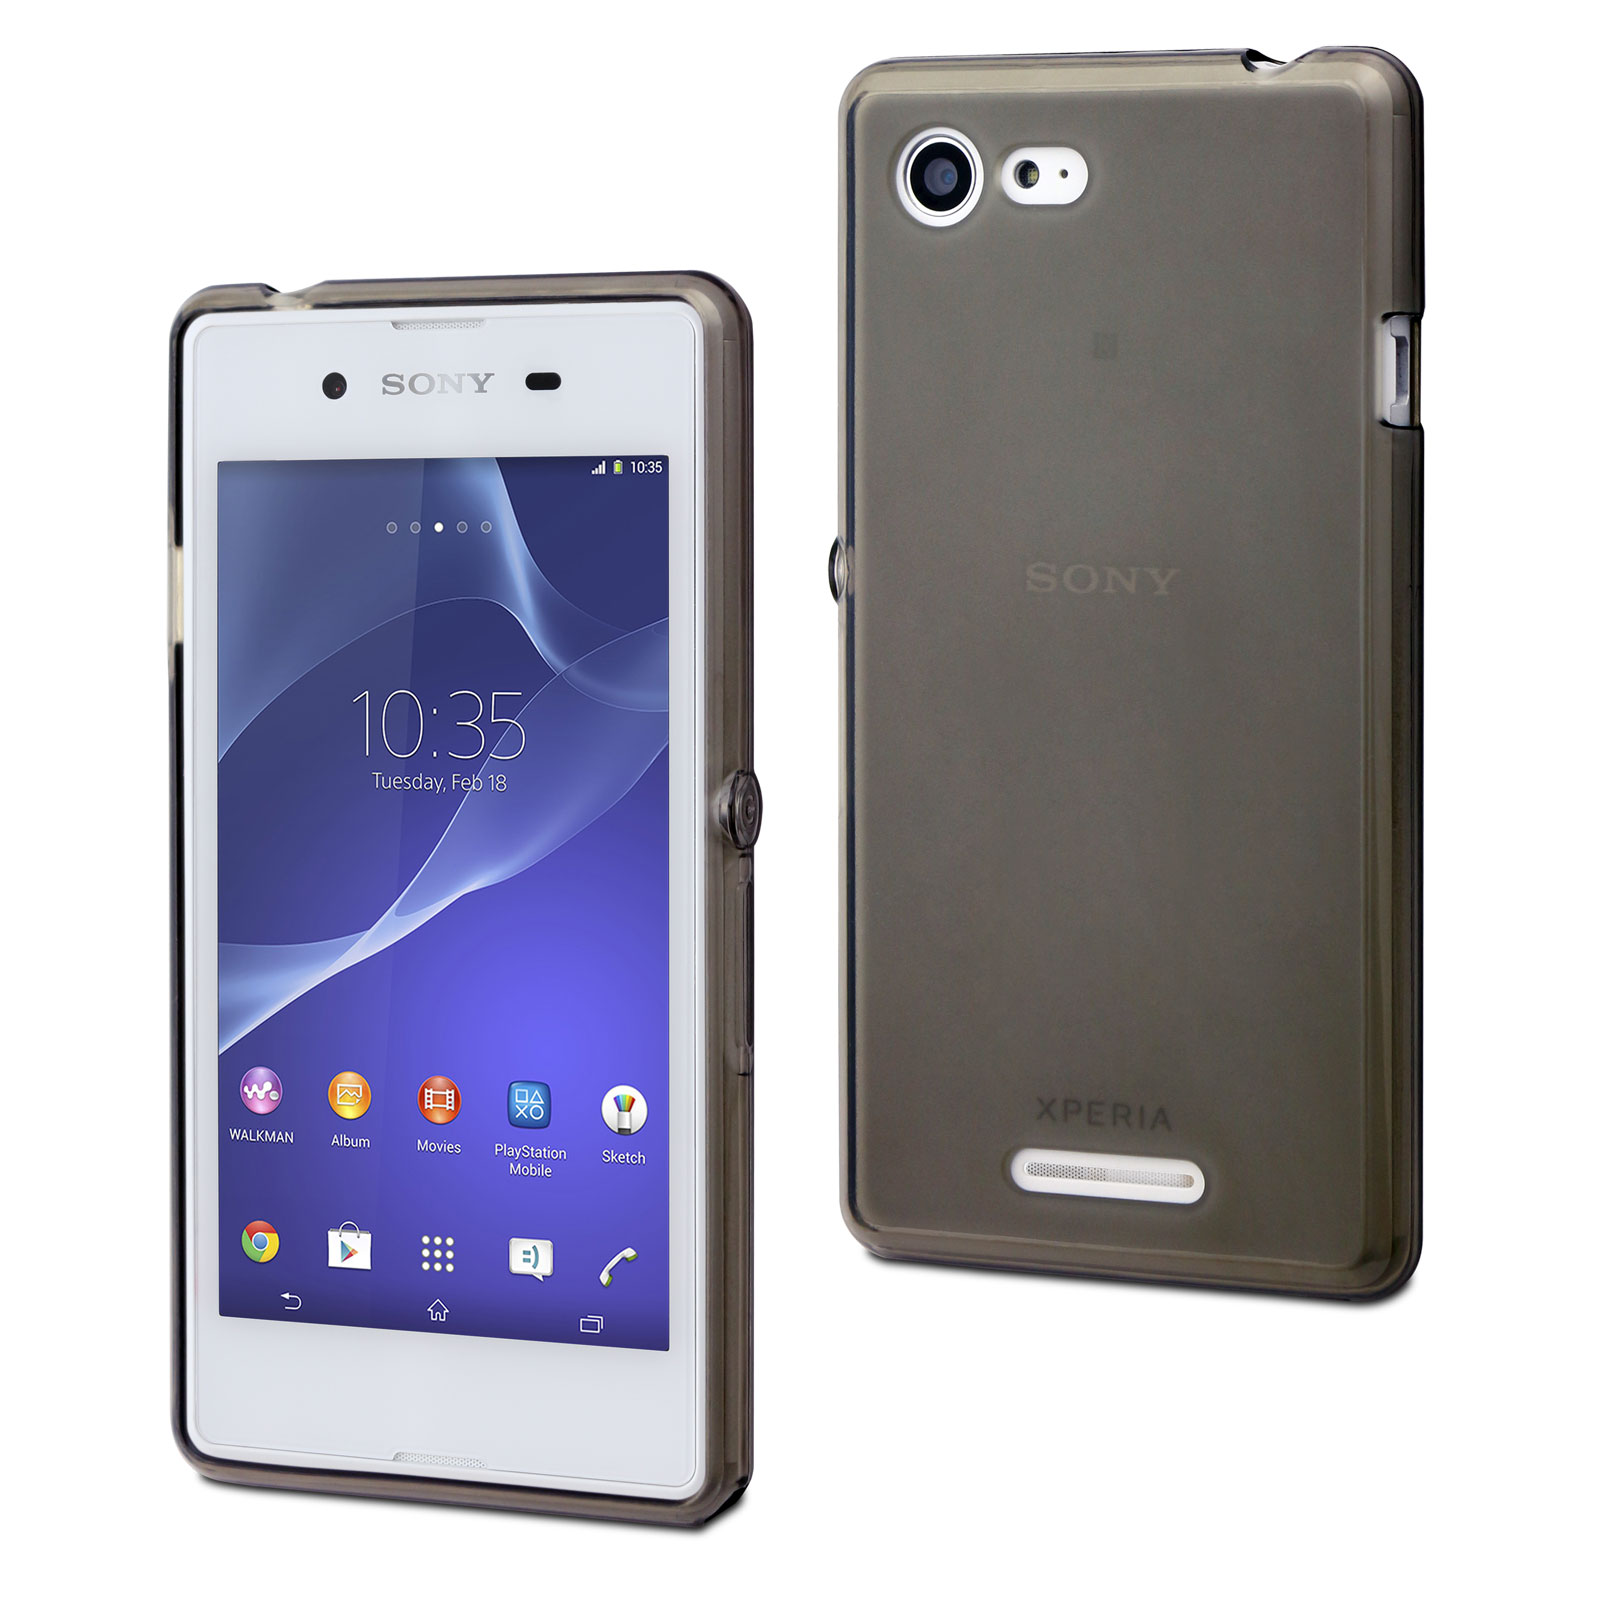 made for xperia housse minigel smoke fonc 233 pour sony xperia e3 etui t 233 l 233 phone made for xperia